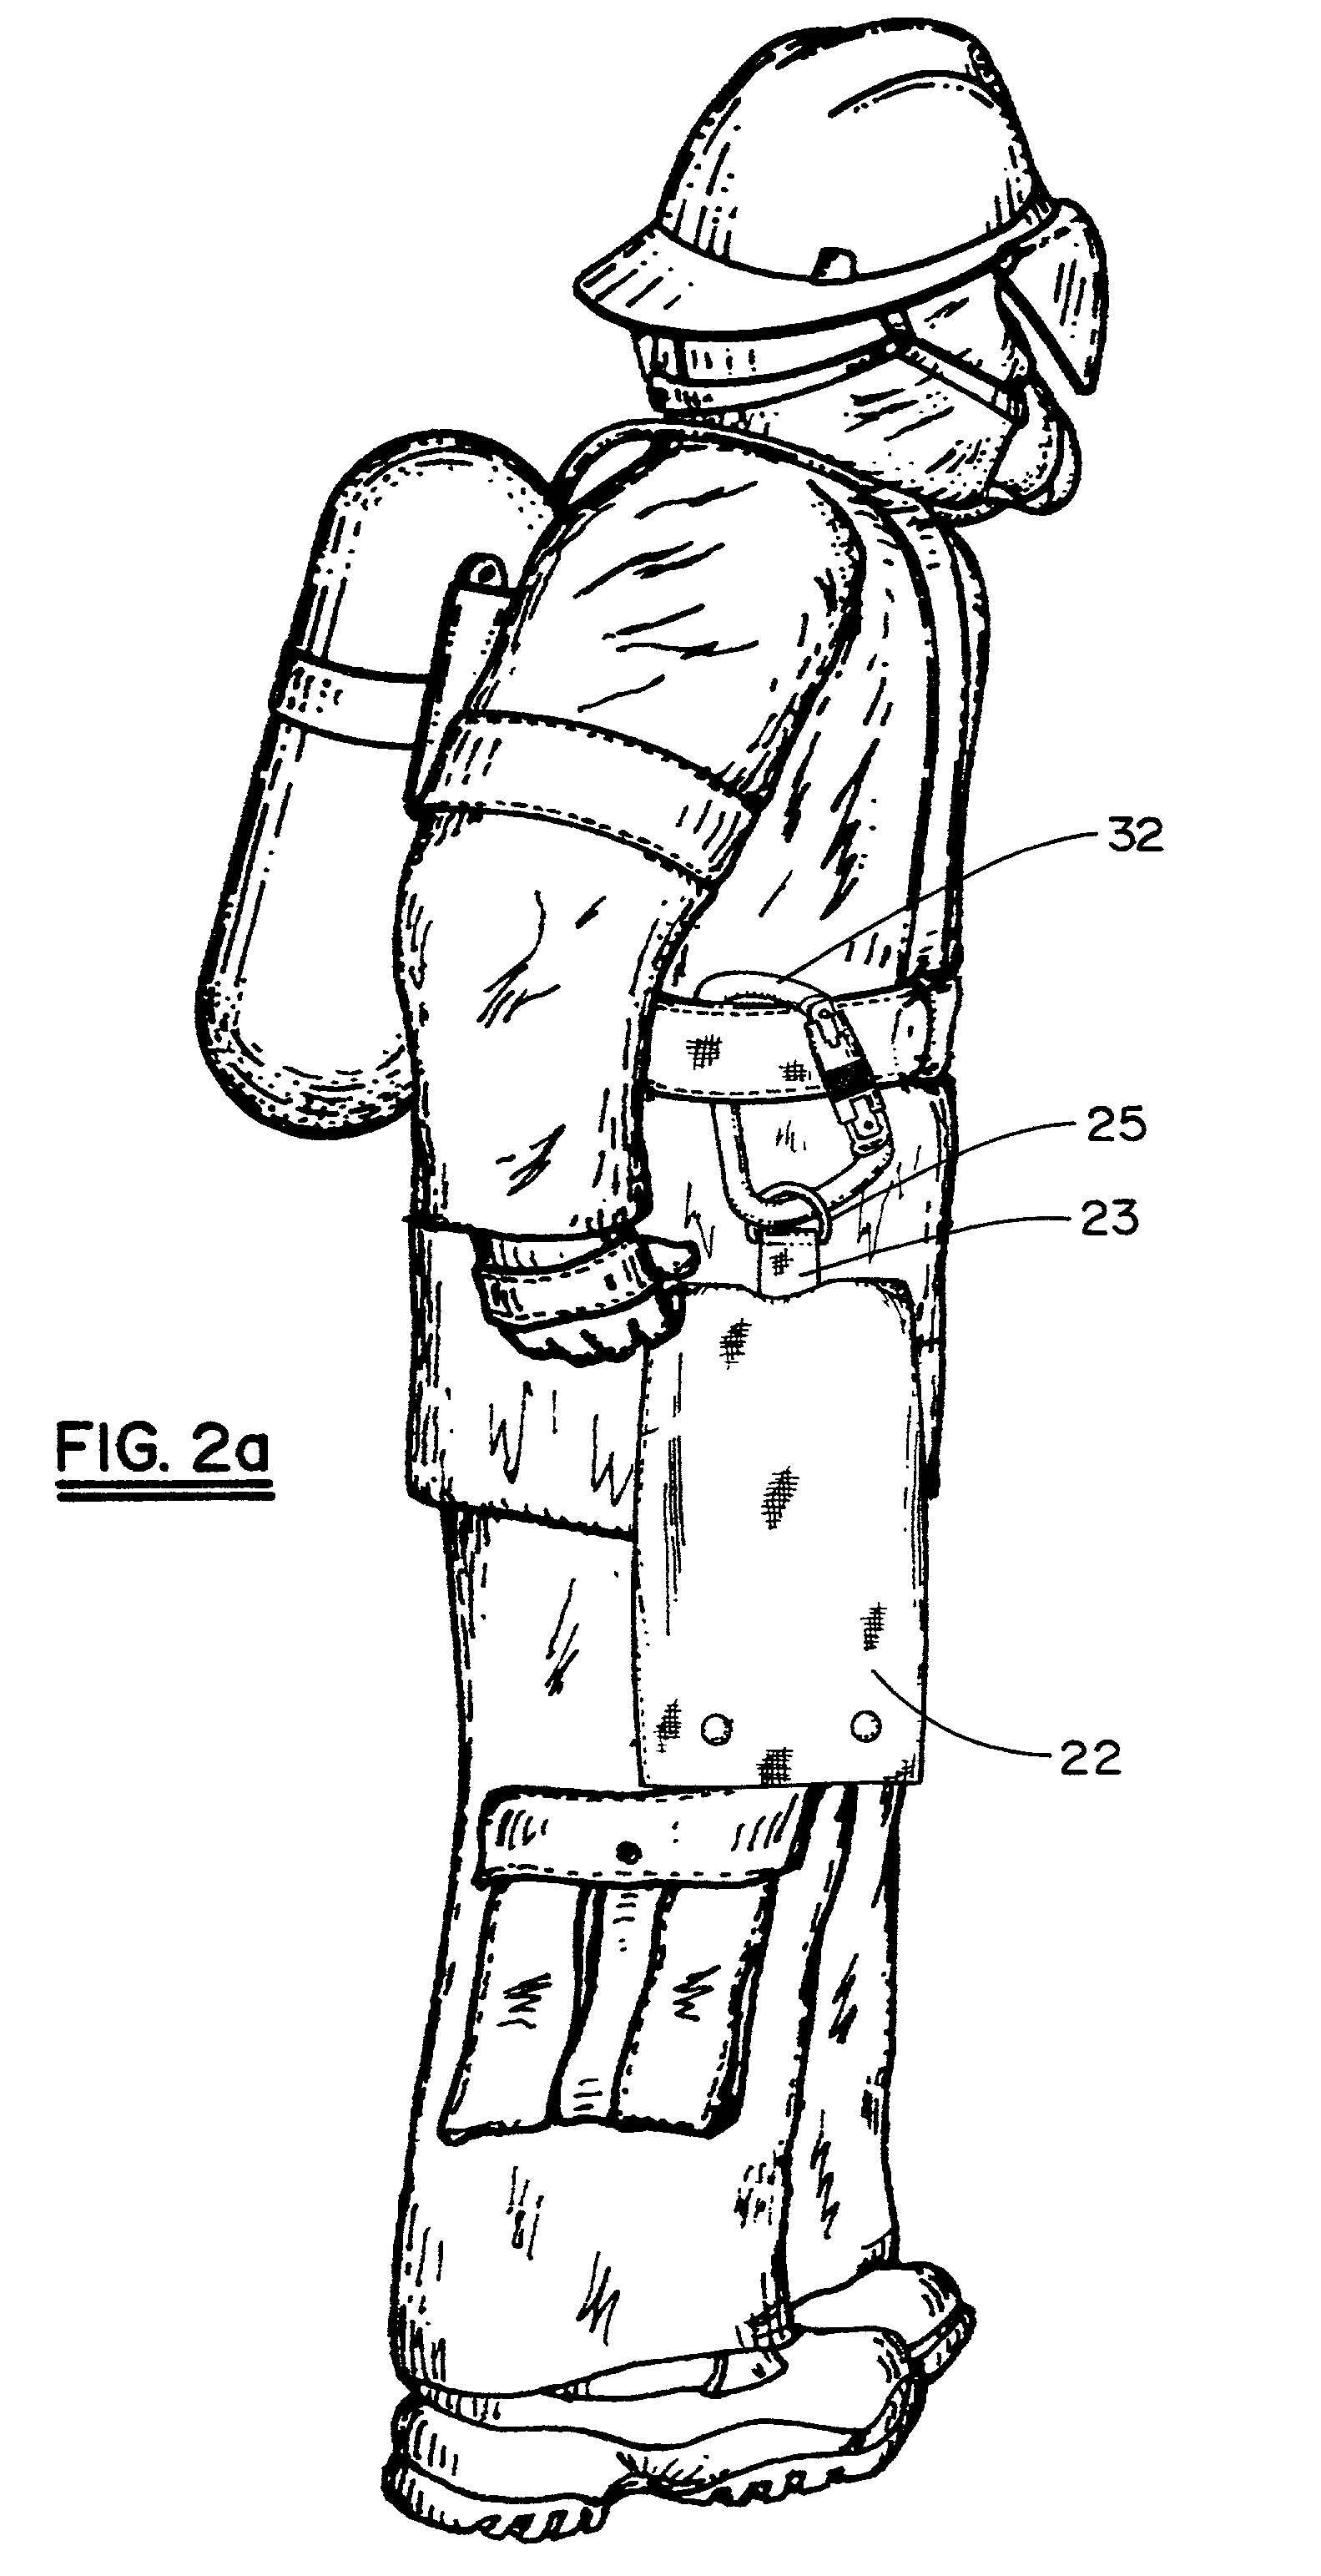 patent us20020158098 - firefighter u0026 39 s safety kit